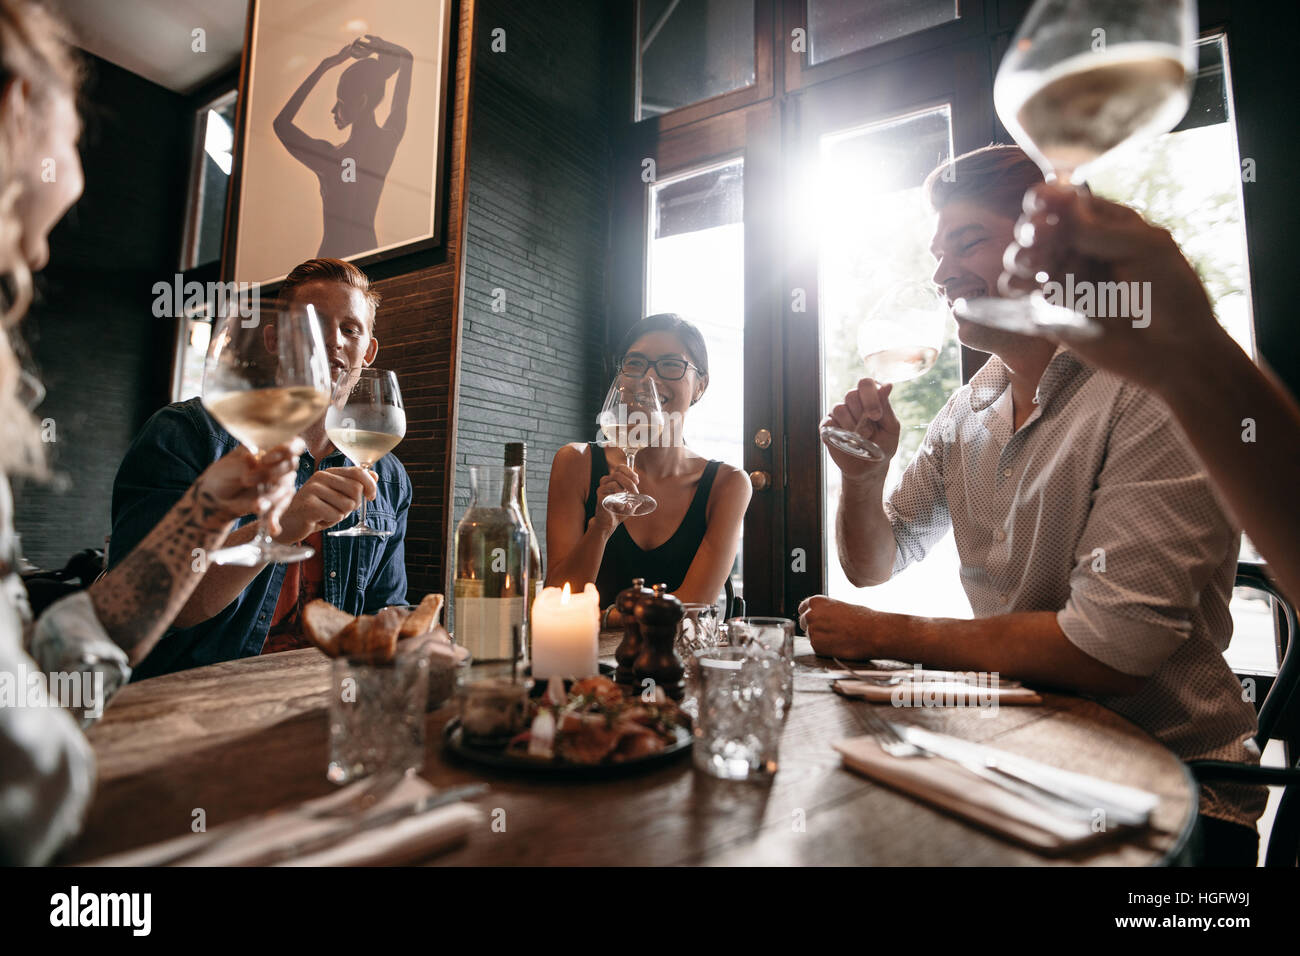 Diverse group of young people having wine at restaurant. Men and women meeting at a restaurant for dinner. - Stock Image